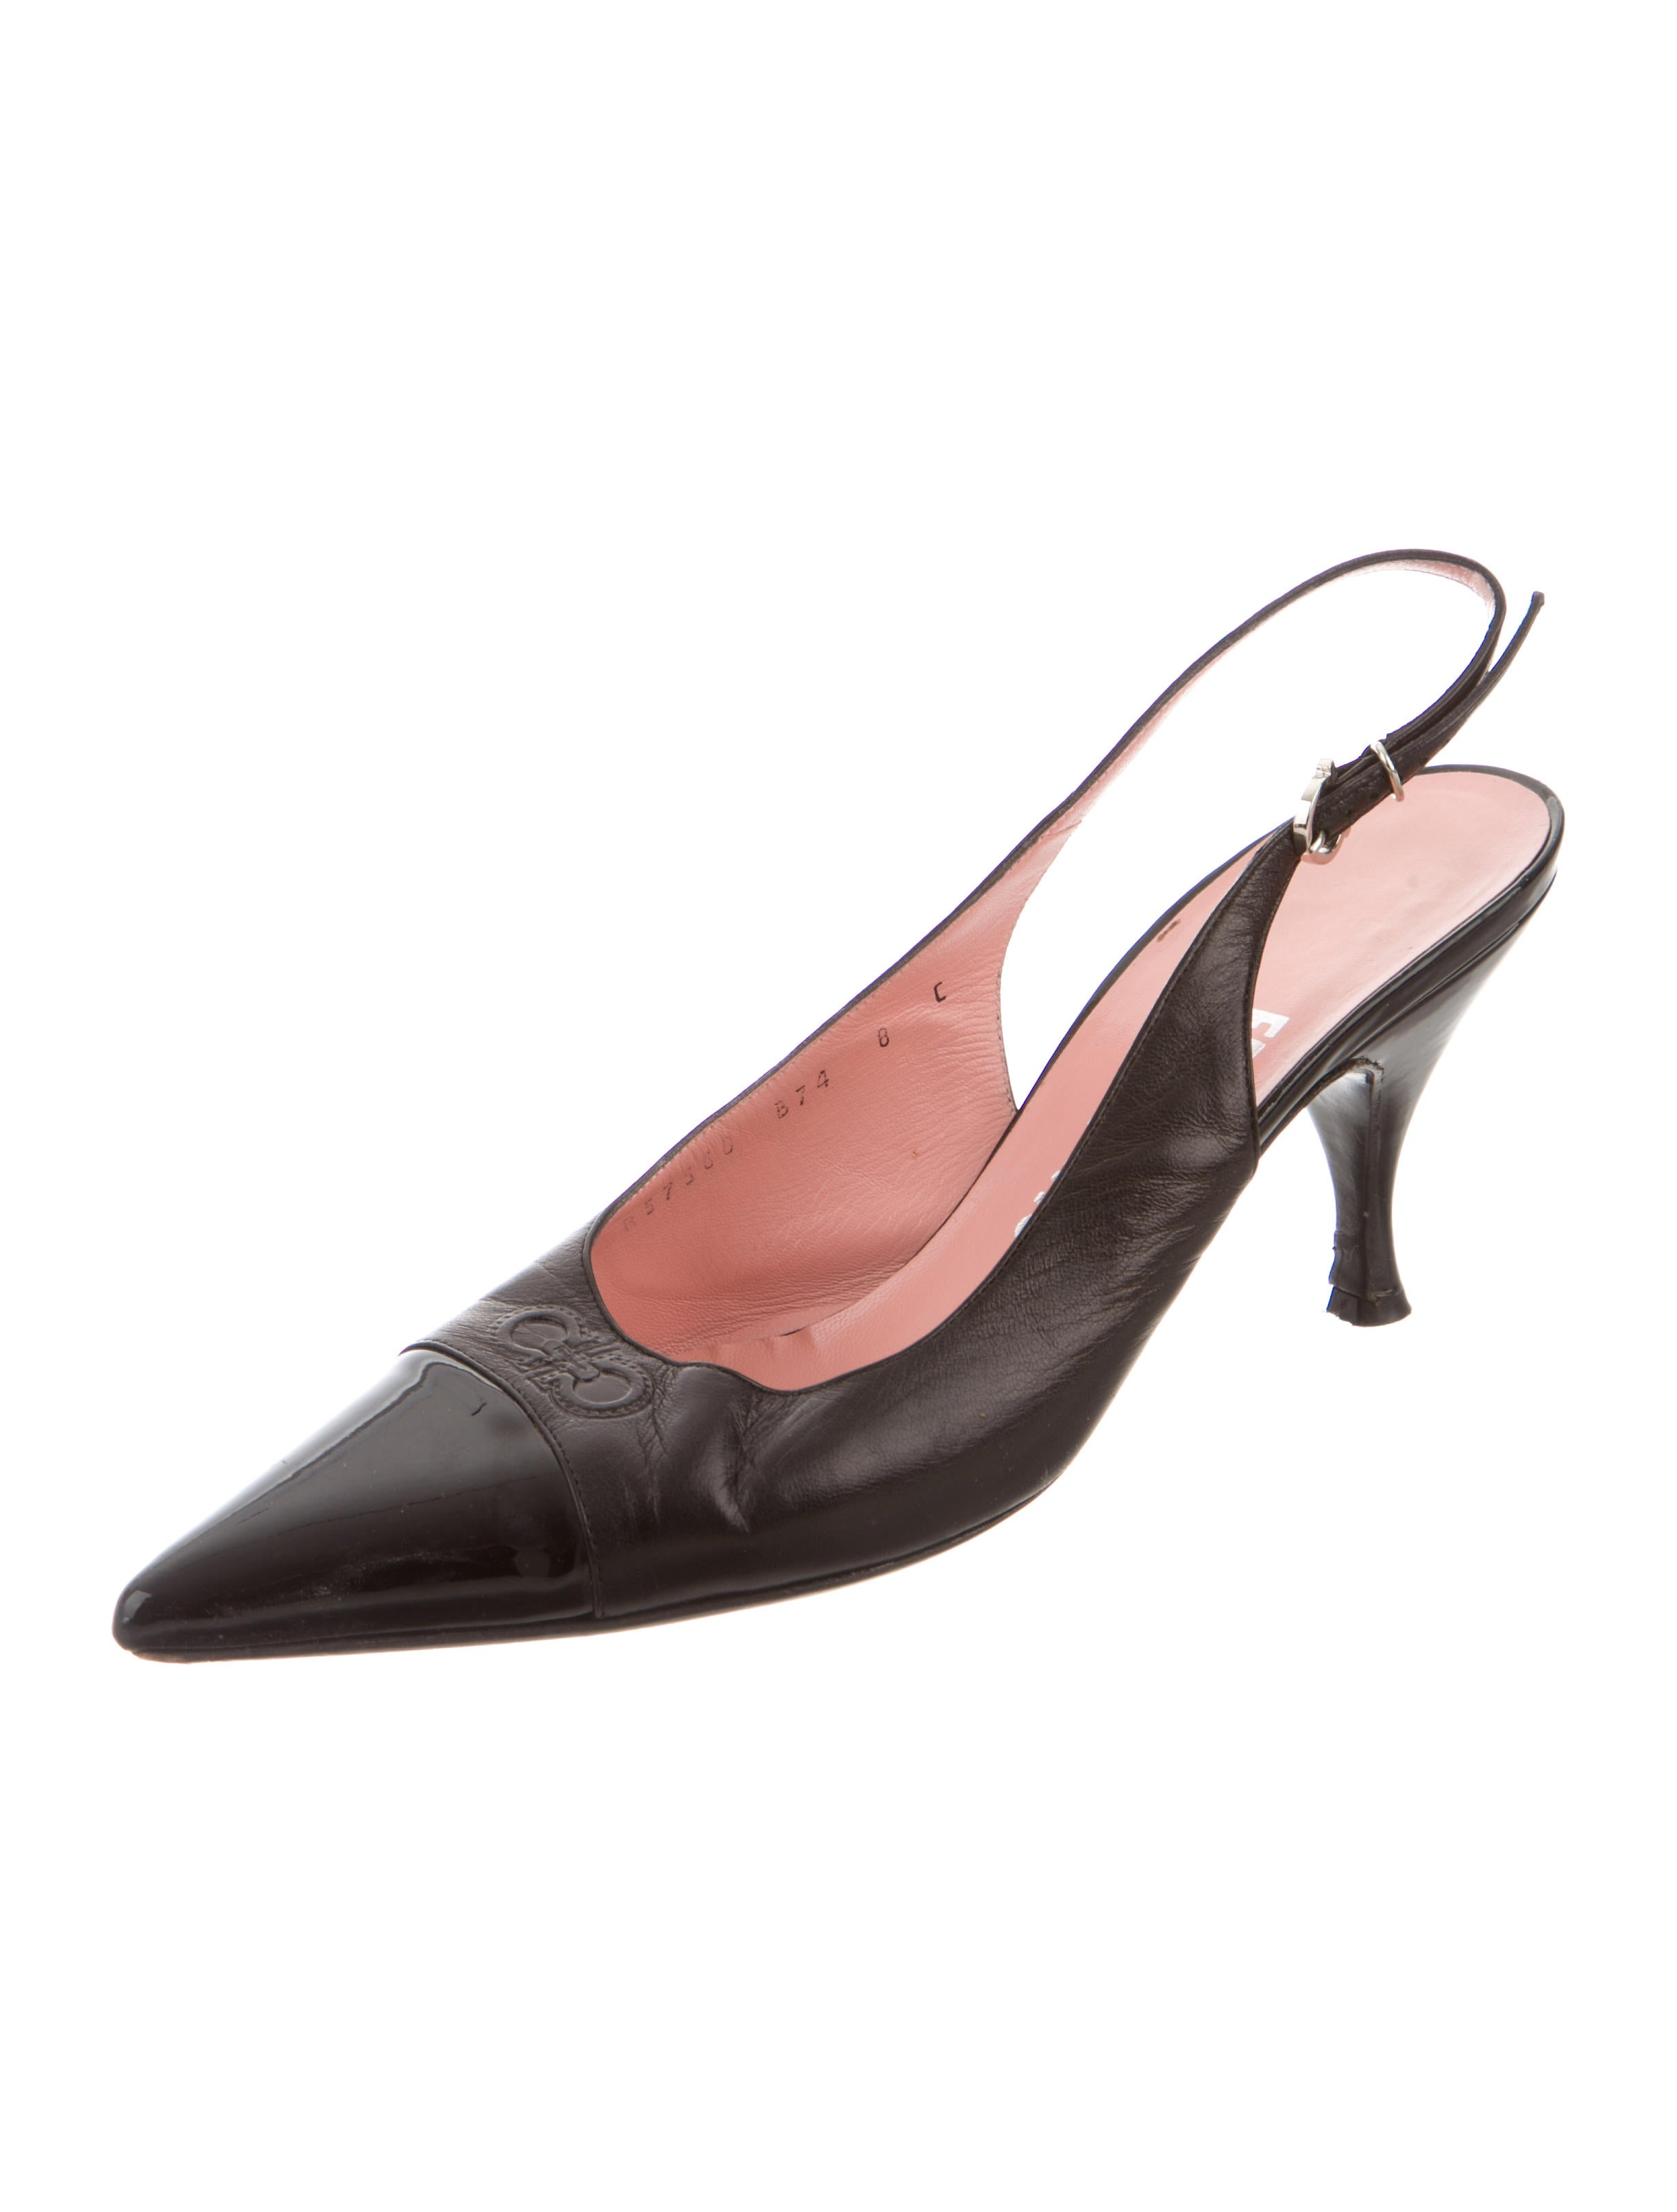 salvatore ferragamo cap toe slingback pumps shoes sal37867 the realreal. Black Bedroom Furniture Sets. Home Design Ideas